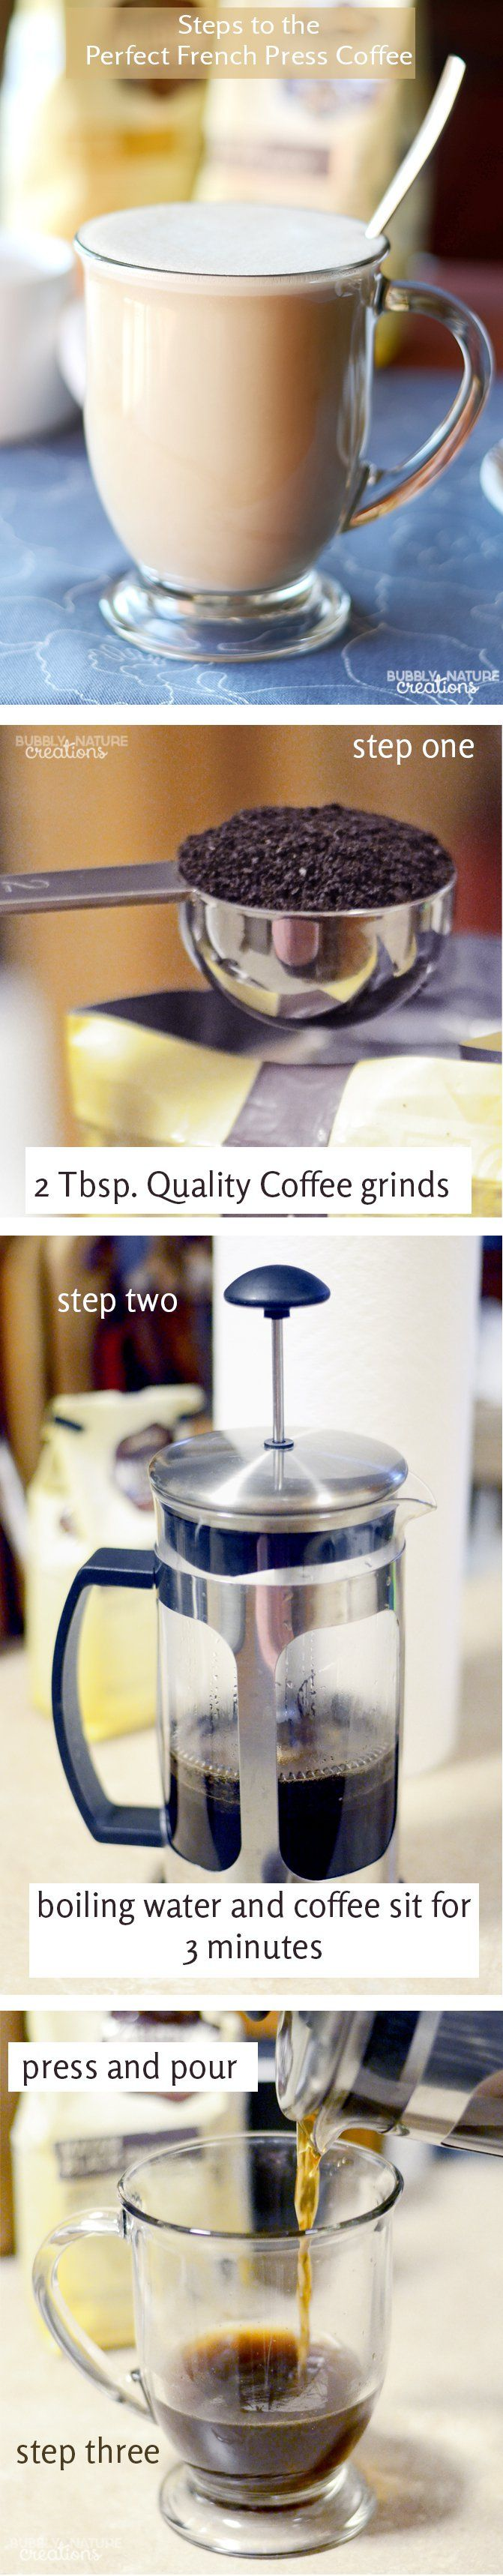 Steps to the Perfect French Press Coffee!